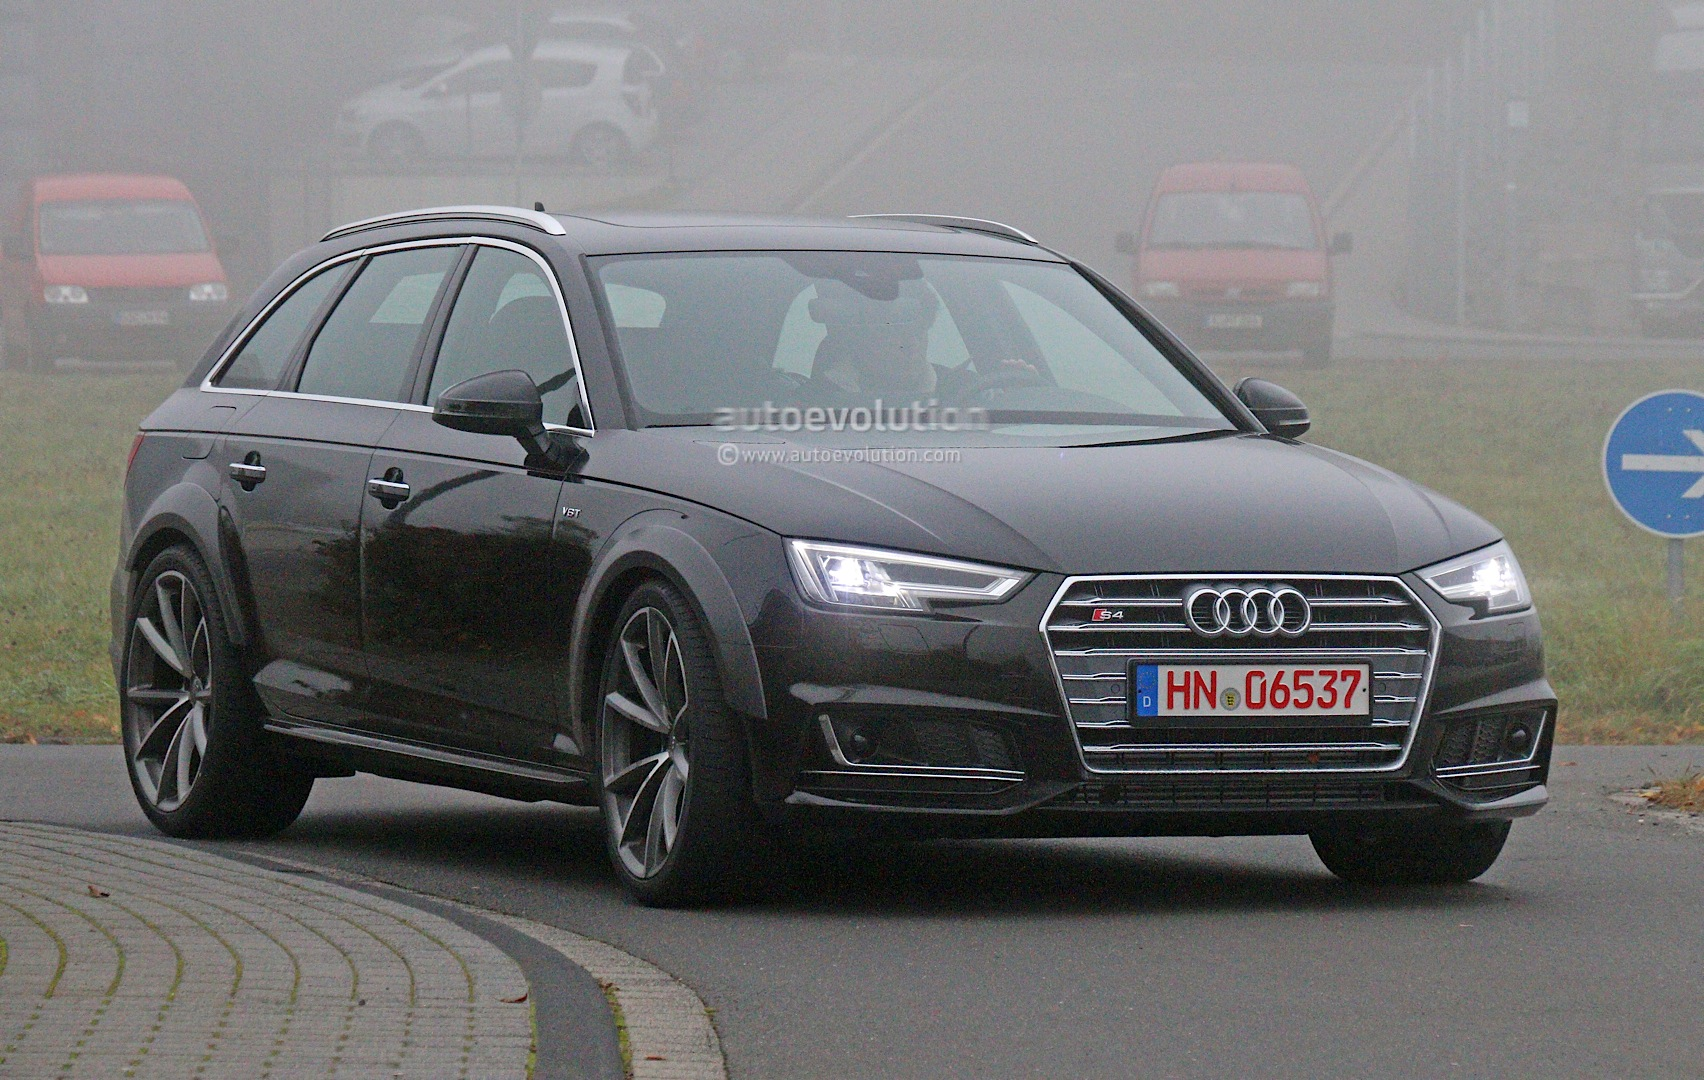 Early 2018 Audi Rs4 Avant Chassis Testing Mule This Could Be It